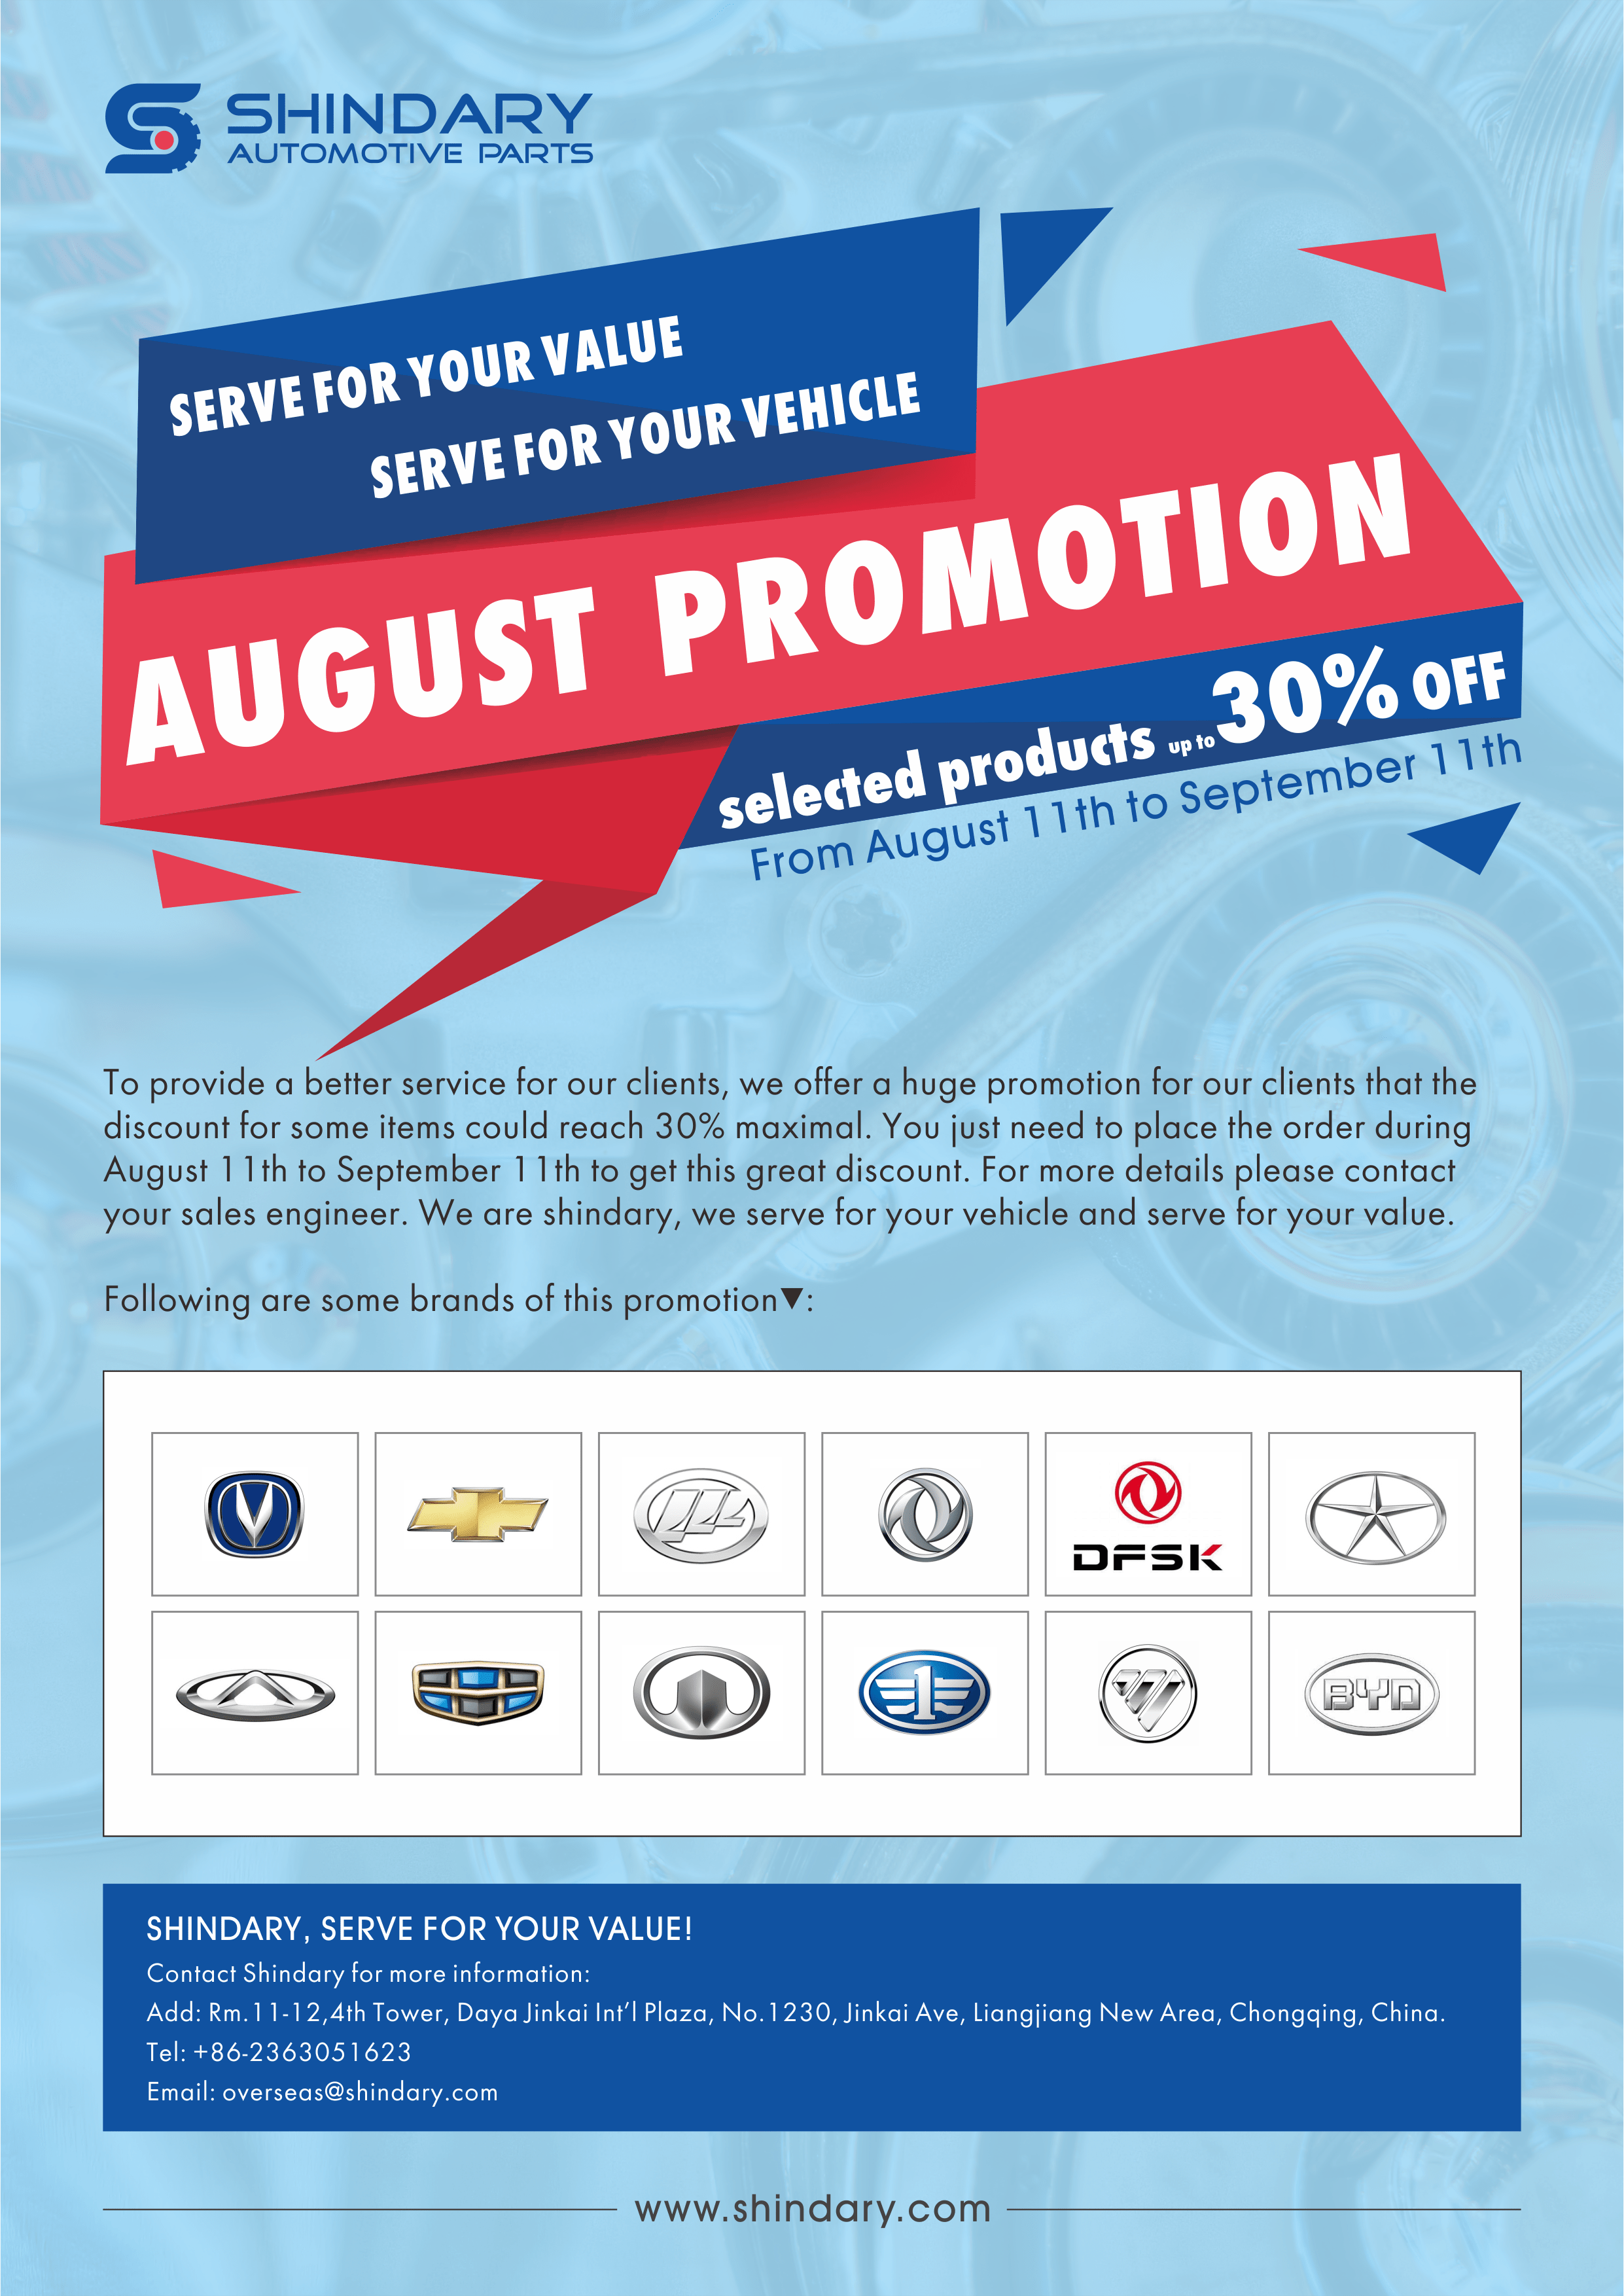 AUGUST PROMOTION PRODUCTS